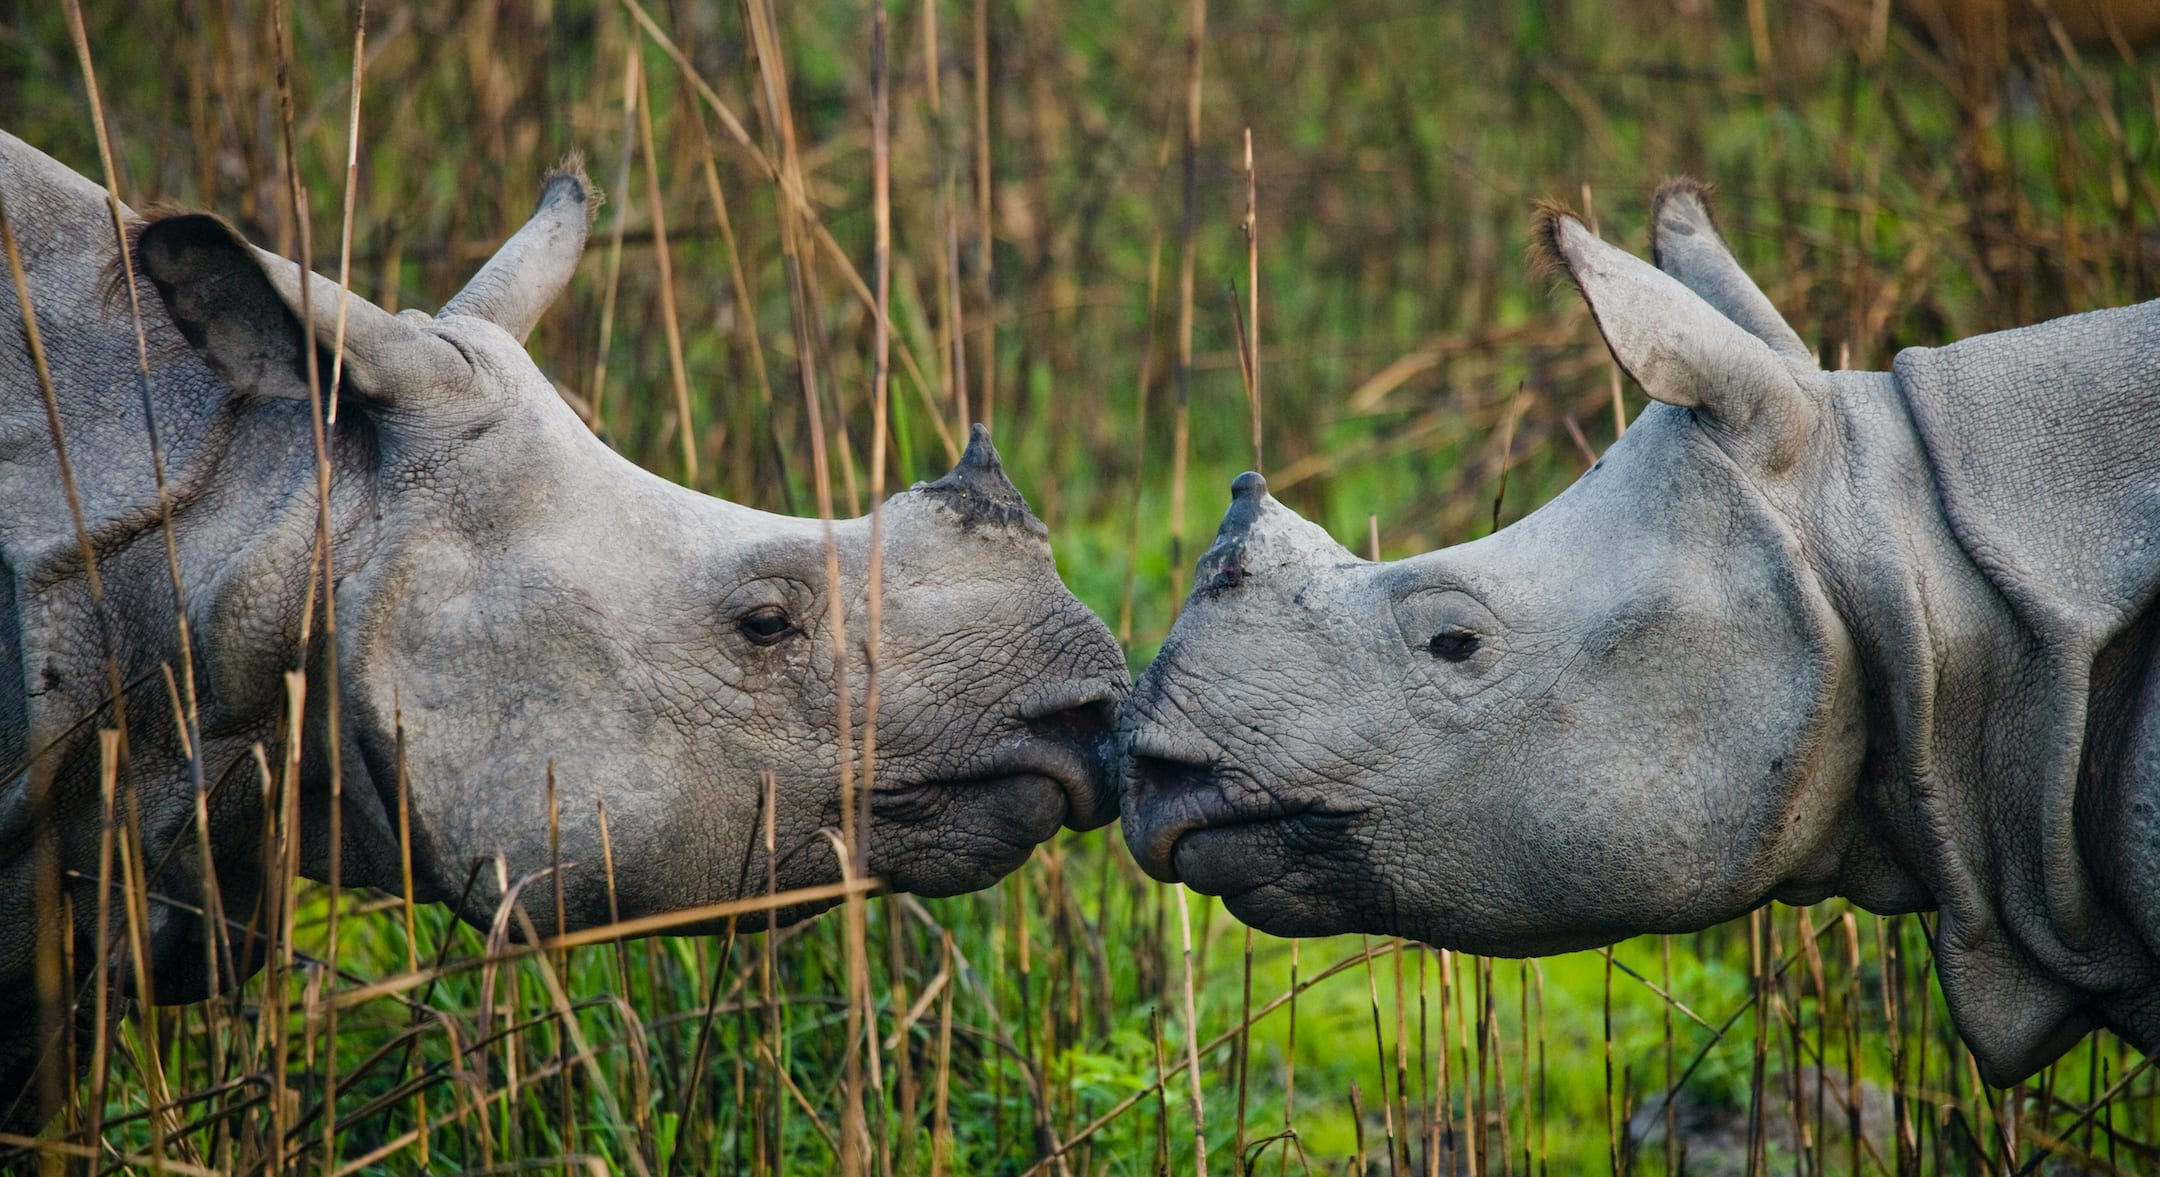 Though the Indian rhinoceros is primarily a solitary animal, there are exceptions: females with their young and breeding pairs. Sometimes a few rhinos may wallow in a swamp, or graze, or rest together as well, though eventually going off on their own. Photo: GUDKOV ANDREY/Shutterstock